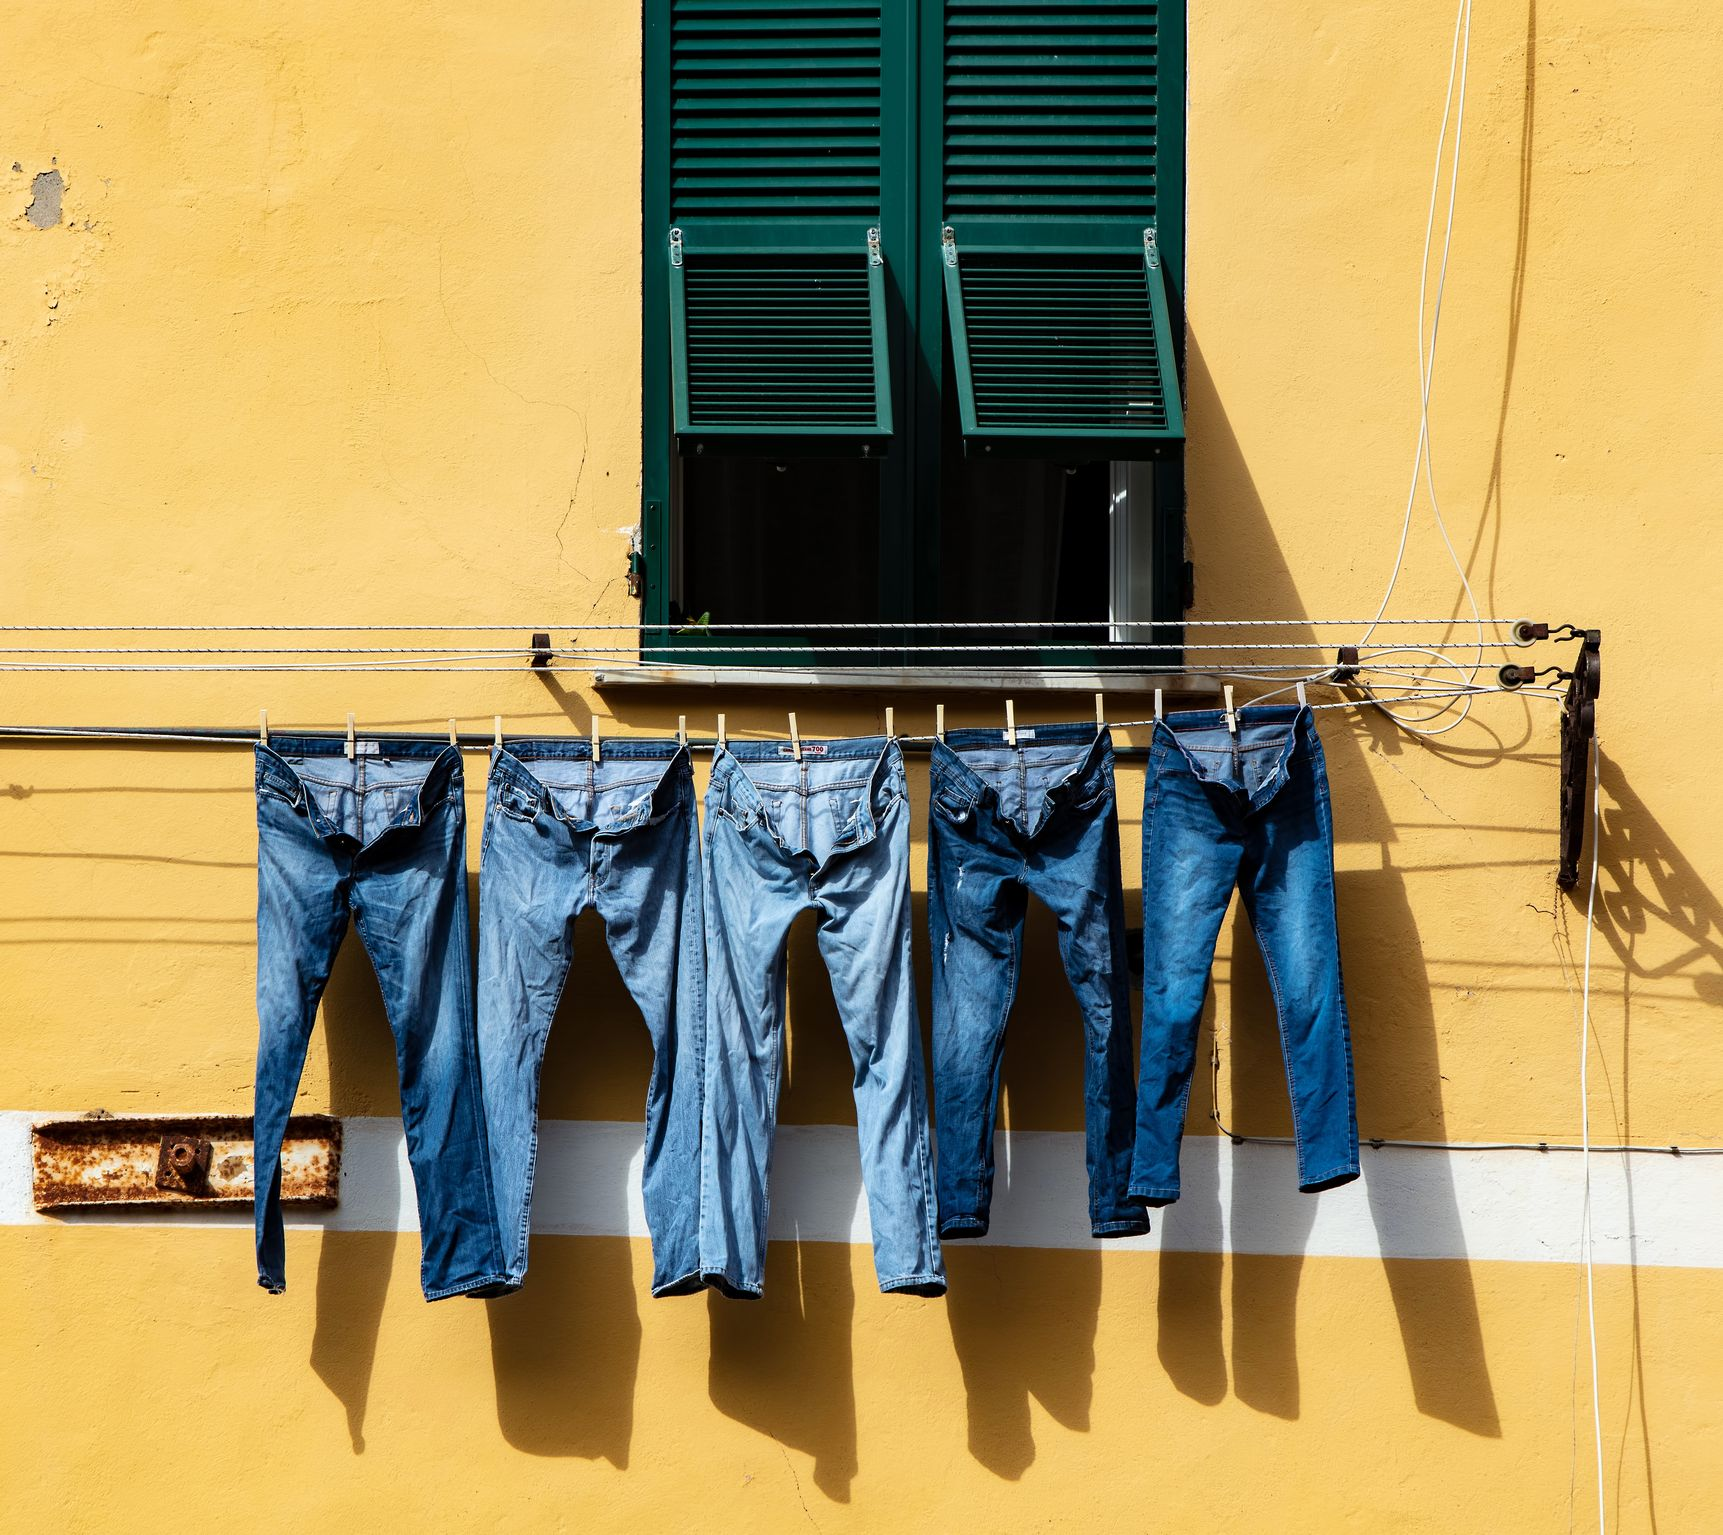 Denim jeans hanging out to dry